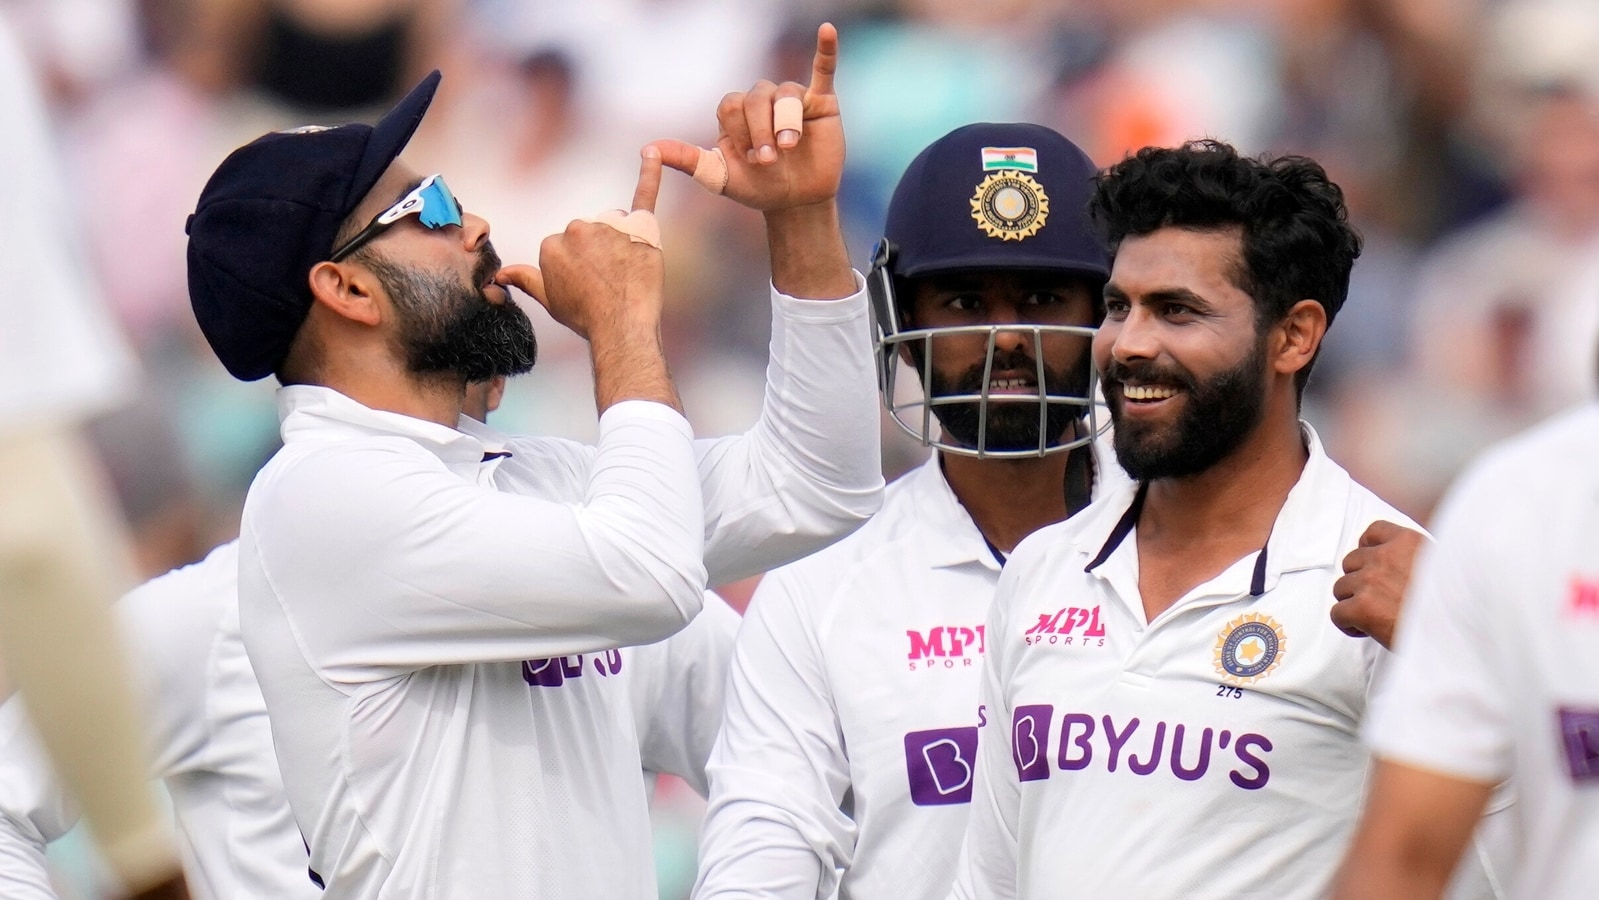 Virat Kohli's trumpet celebration after Hameed and Bairstow's wickets  sparks debate on social media   Cricket - Hindustan Times